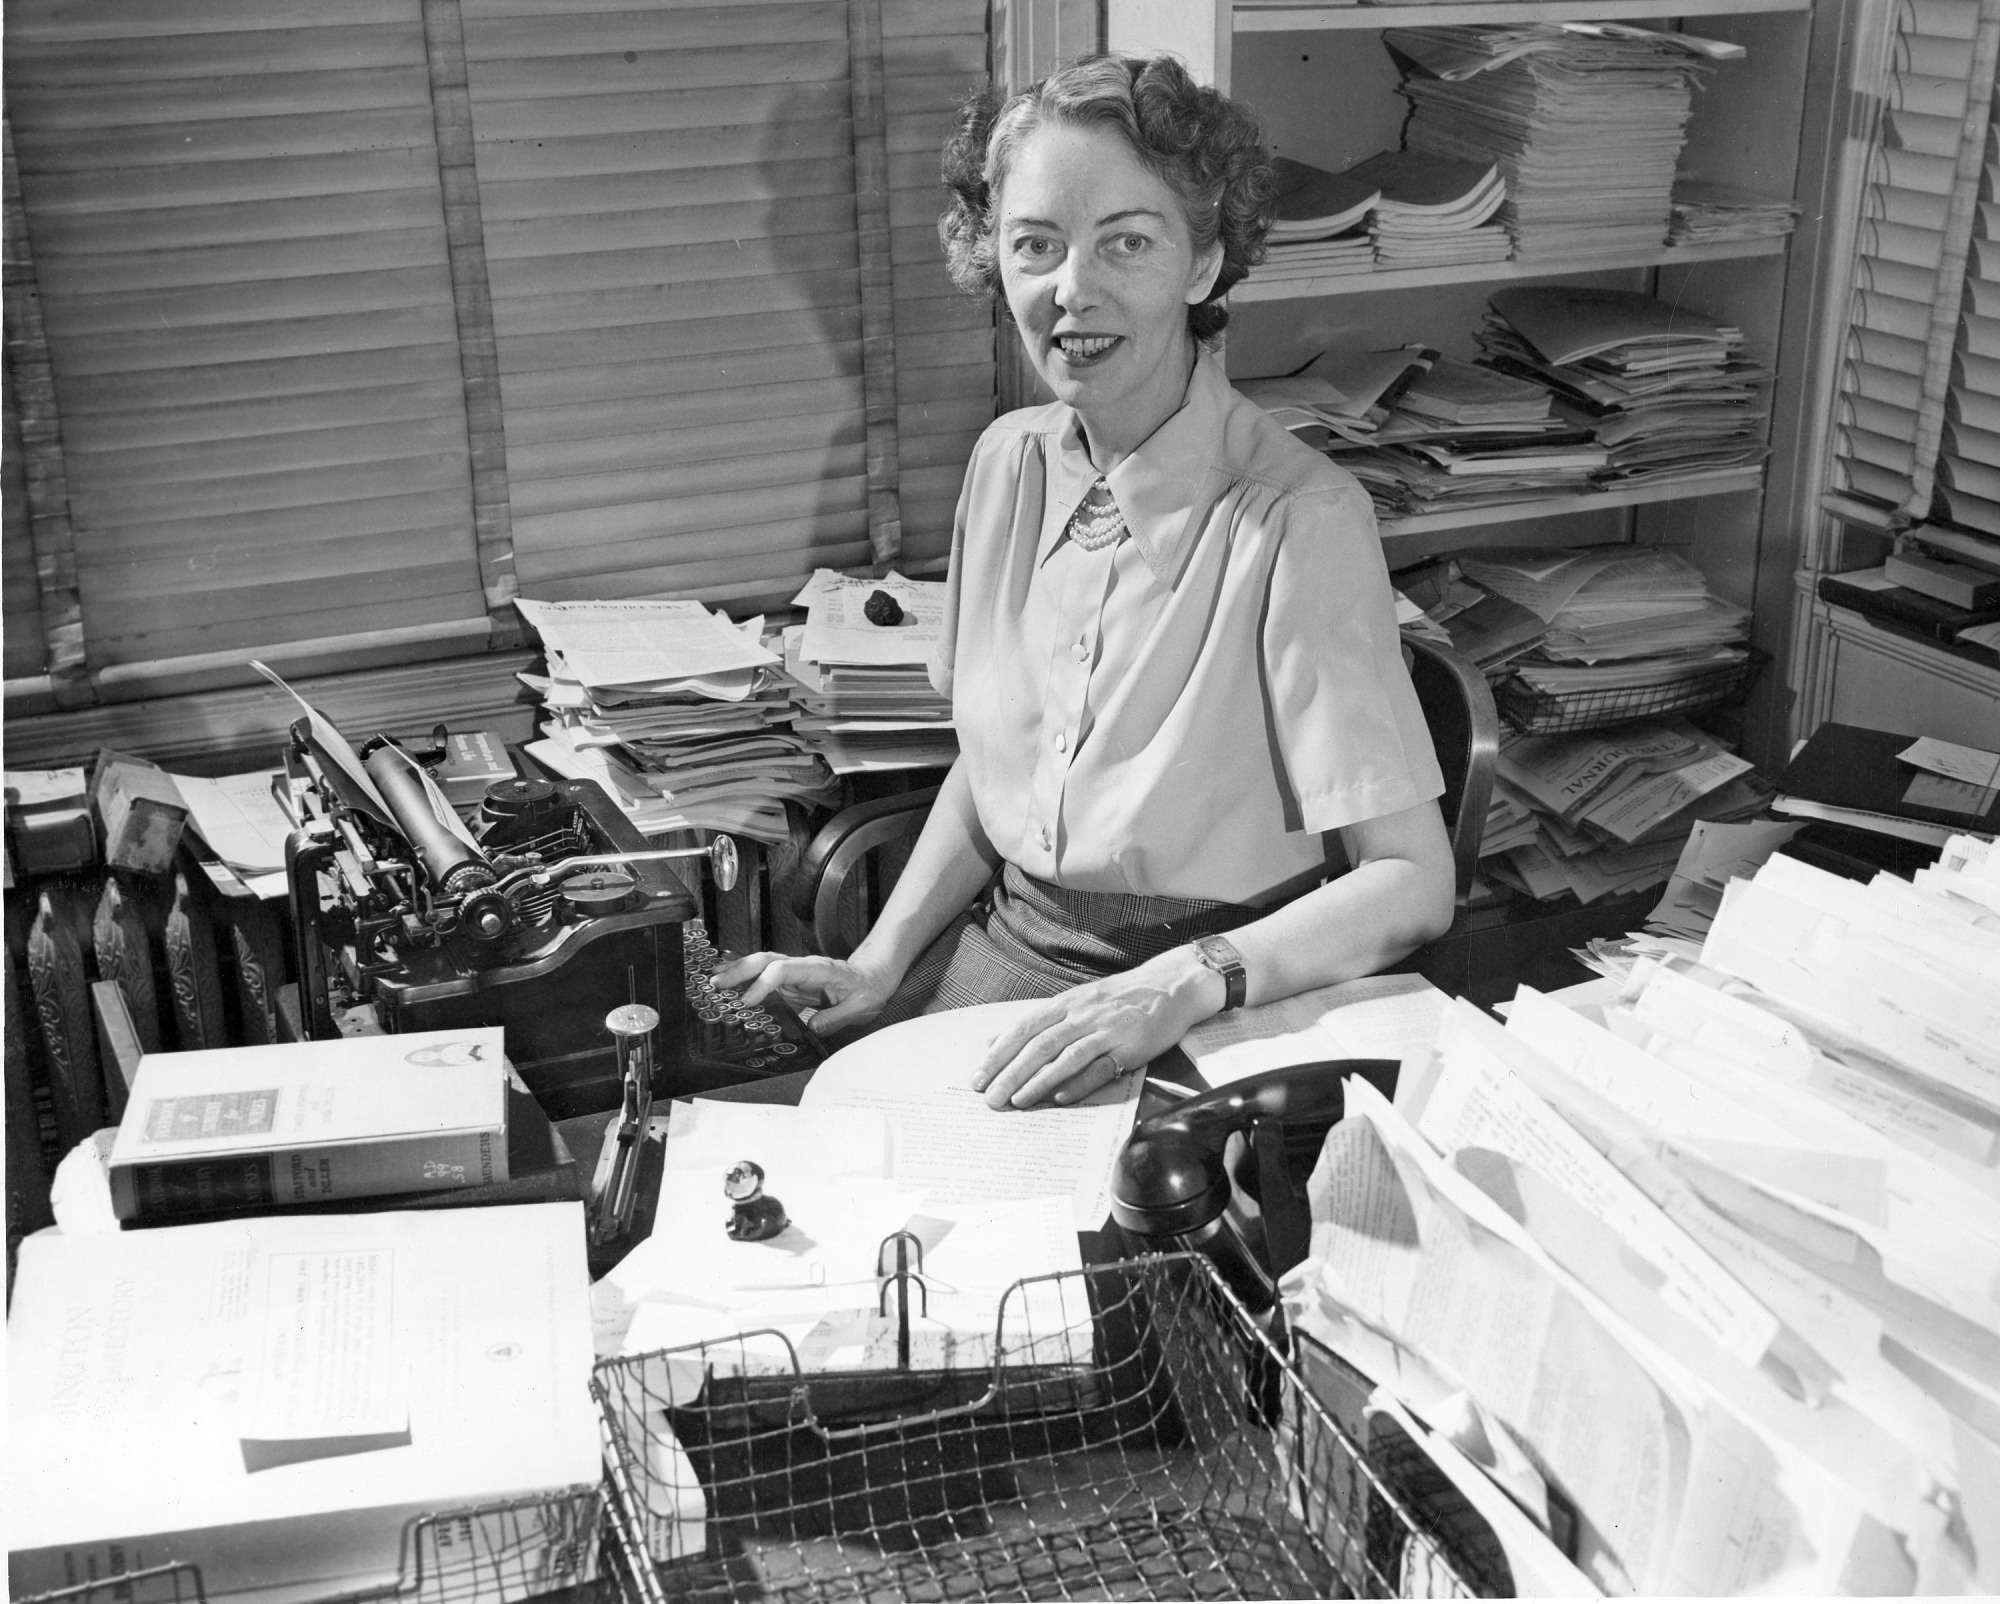 Jane Stafford (1899-1991), Smithsonian Institution Archives, SIA Acc. 90-105 [SIA2009-3715].